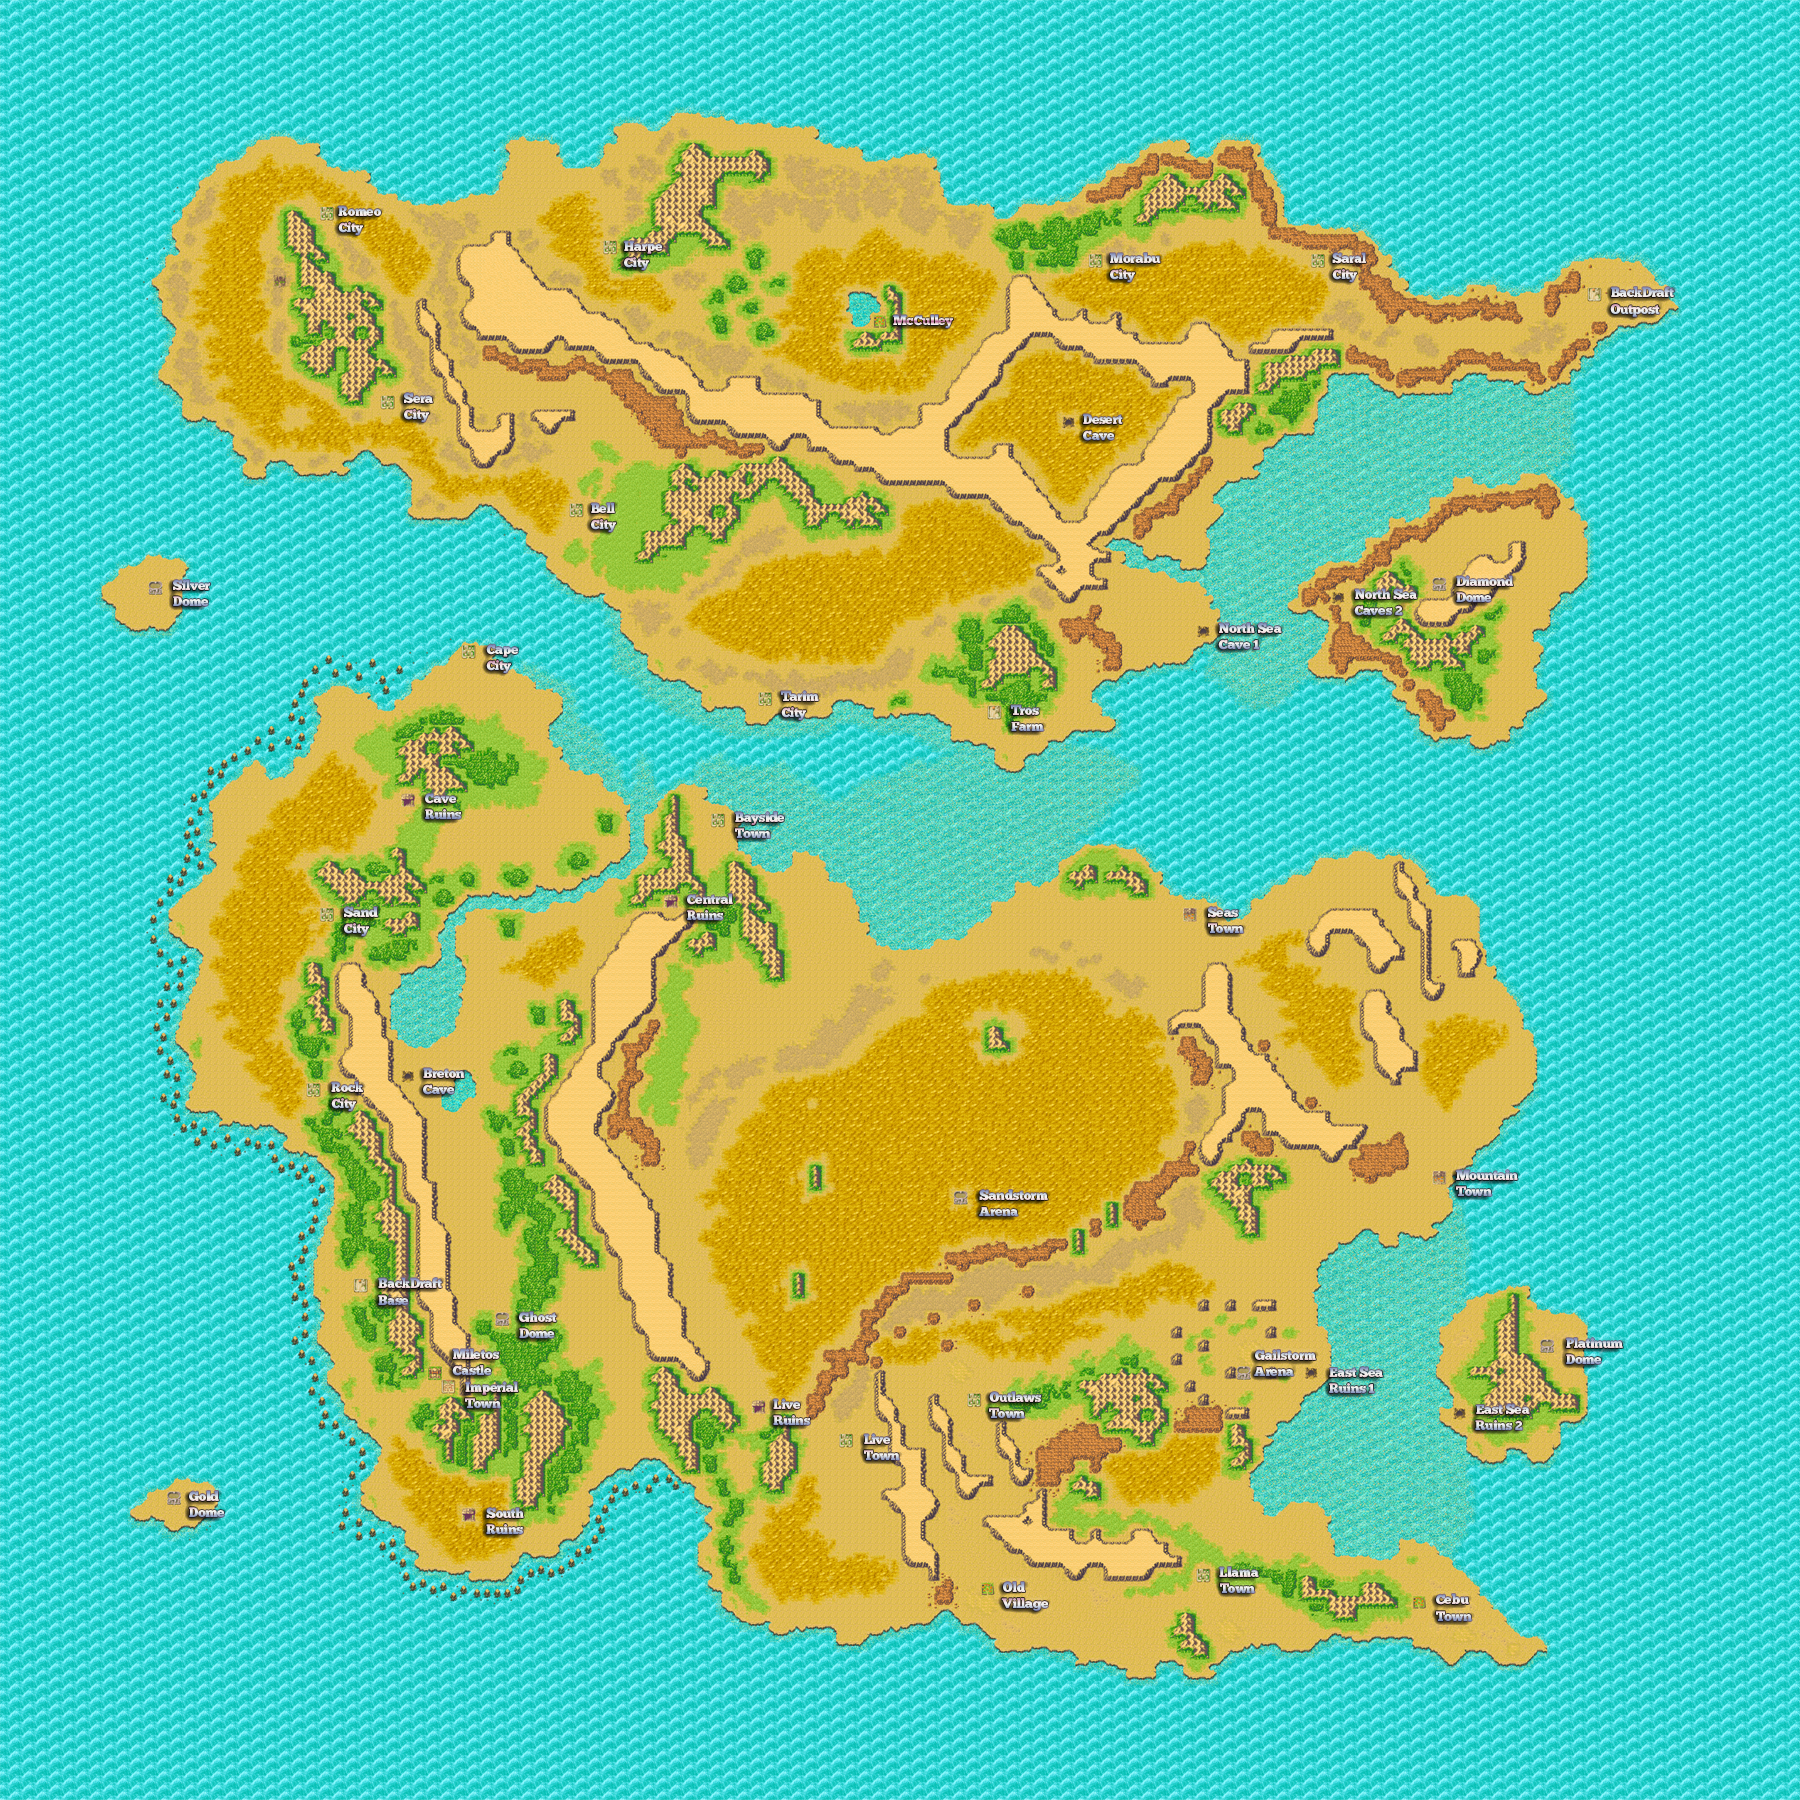 Zoids-legacy-overworld-map-big-labled